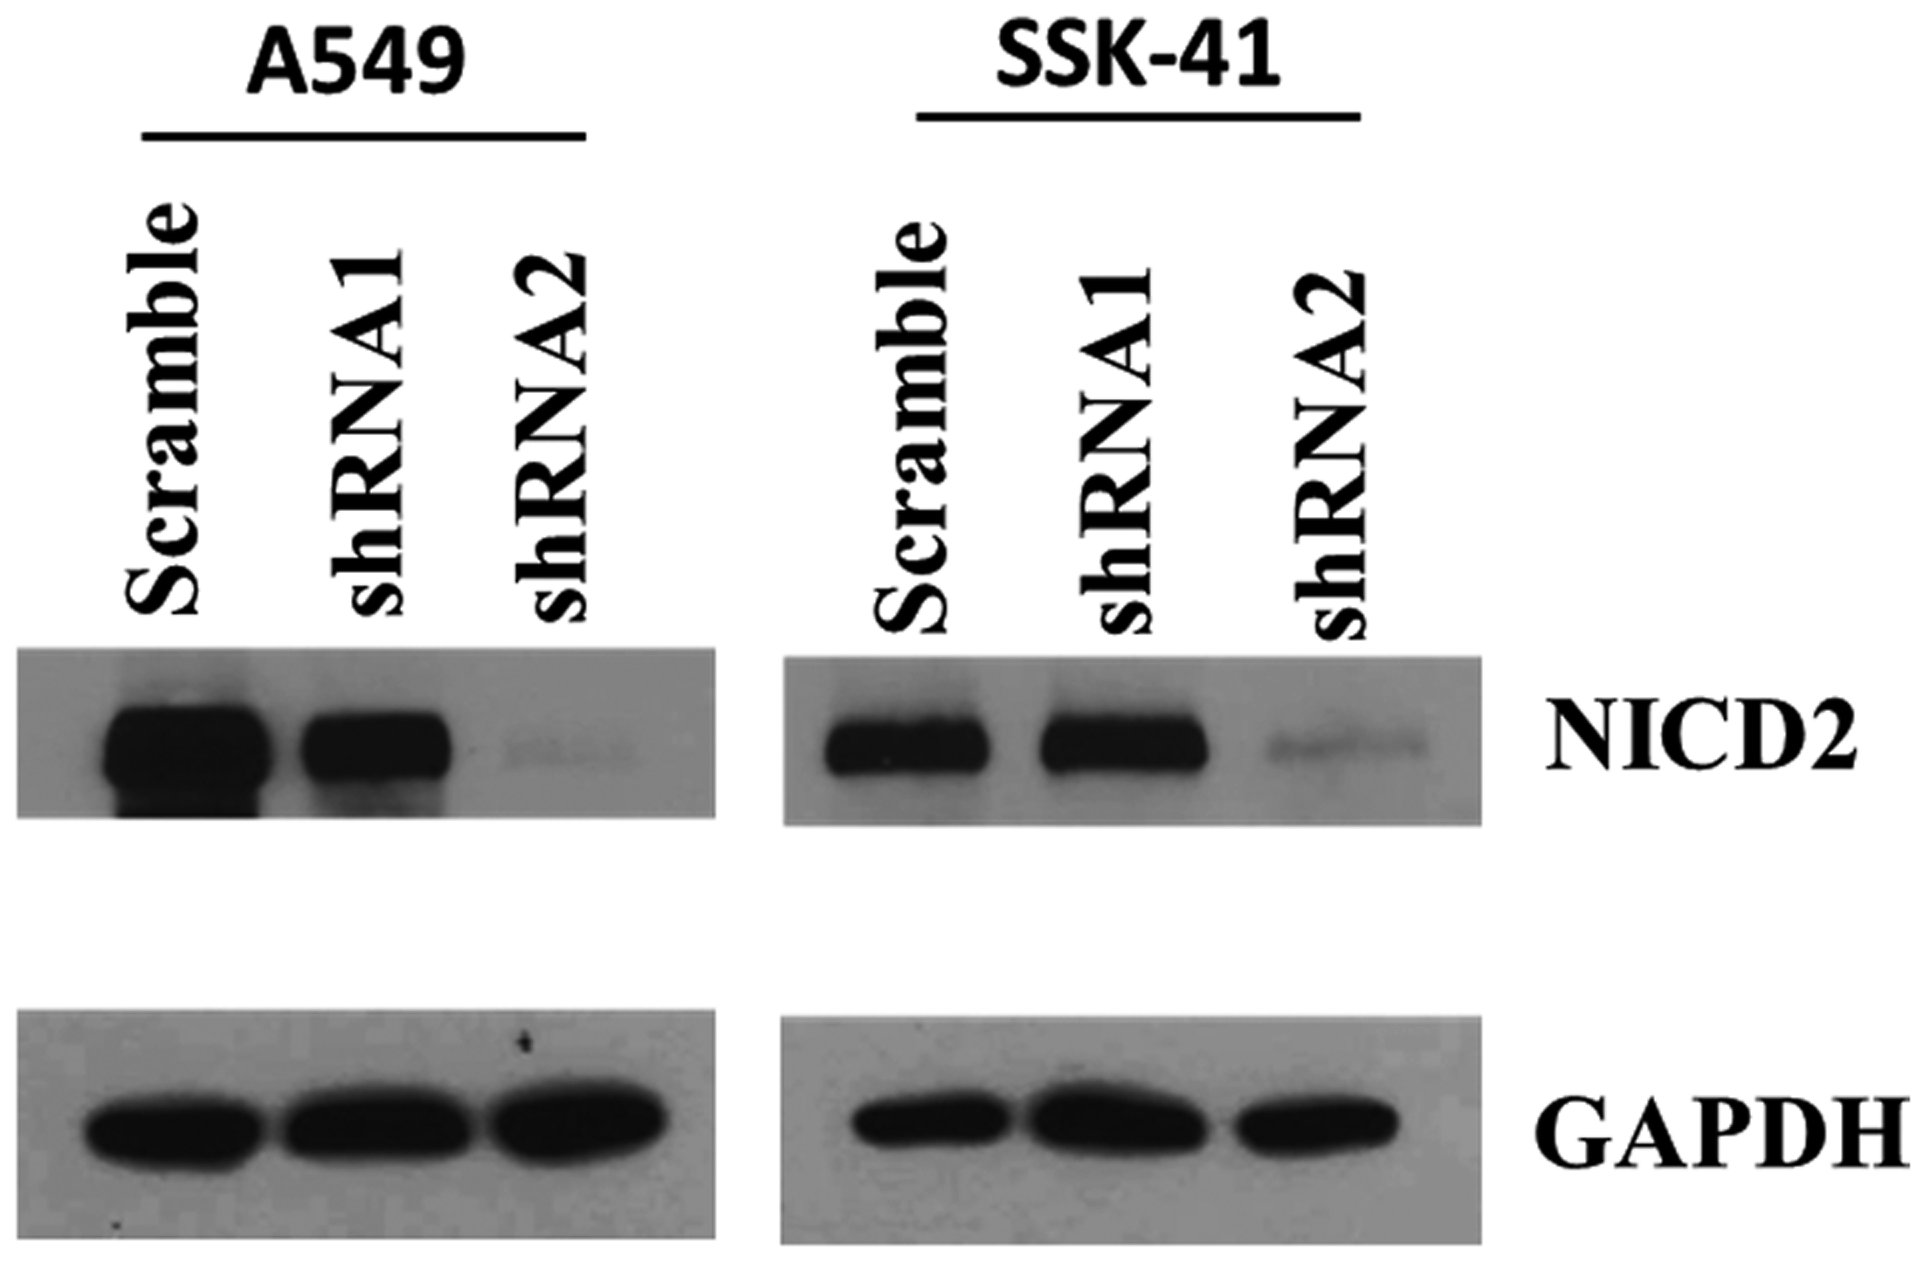 Efficiency of Notch2 knockdown in A549 and SSK-41 cells by lentiviral vectors bearing shRNA.